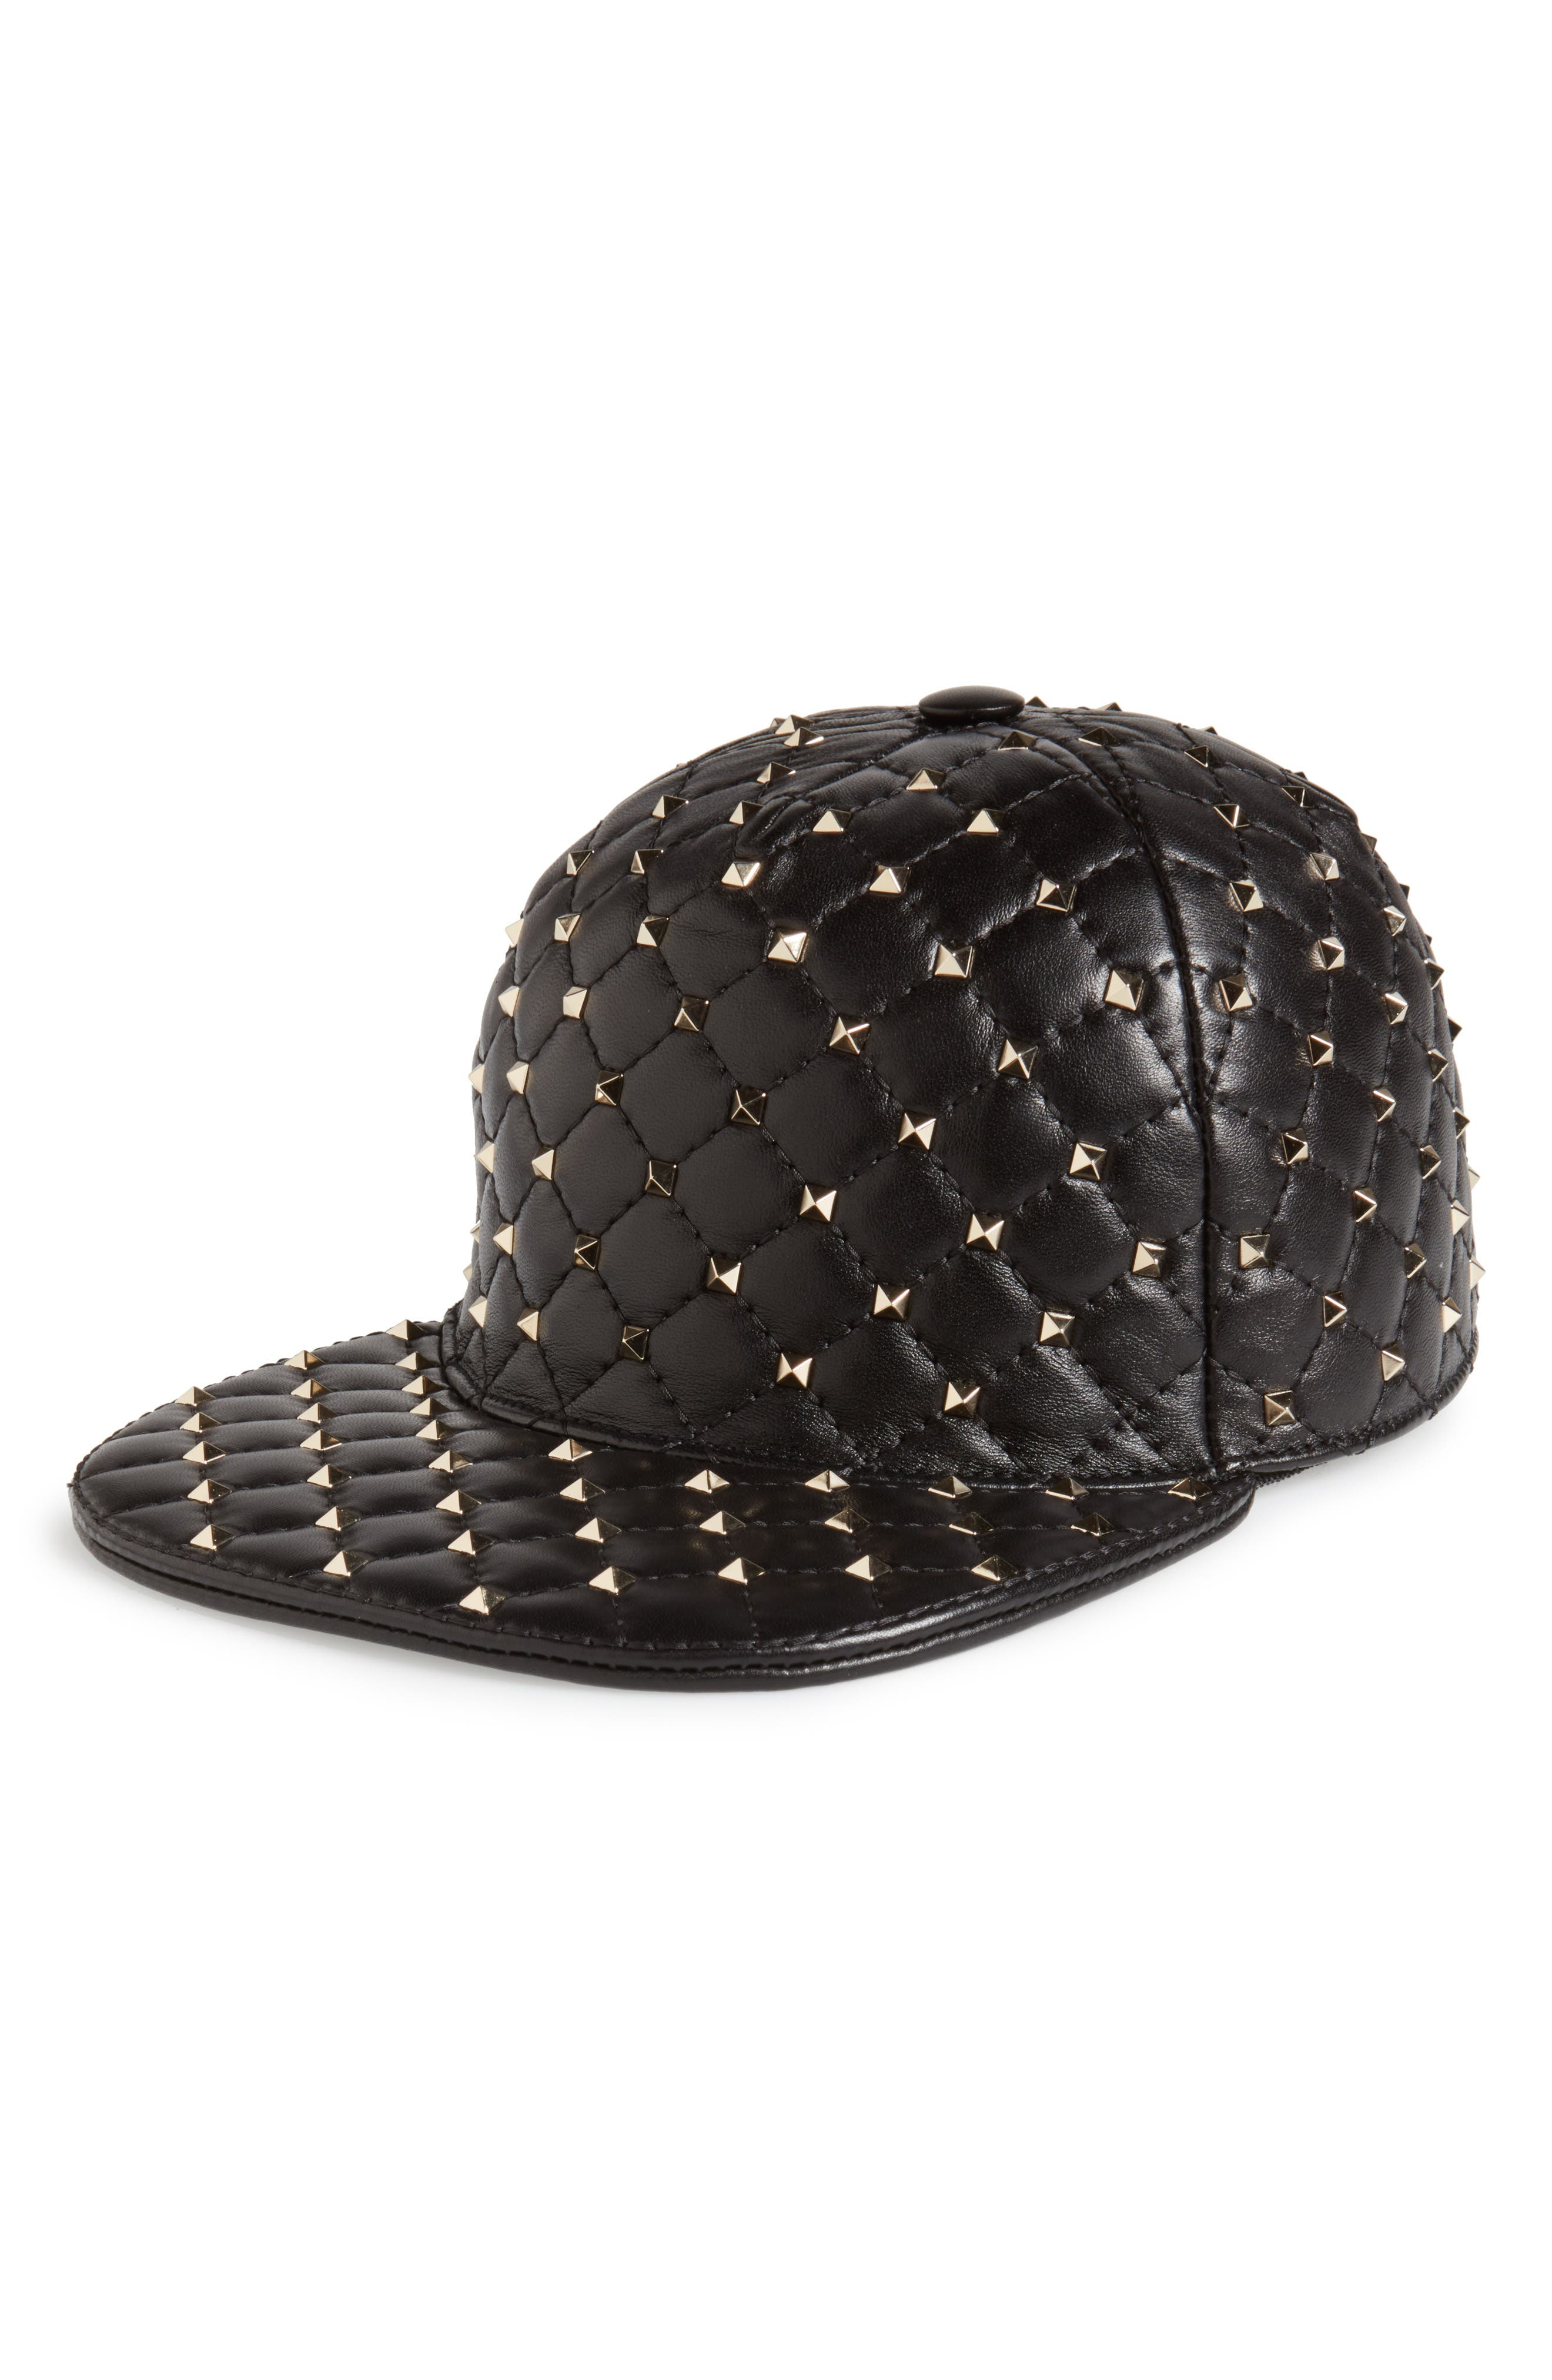 Rockstud Spike Leather Baseball Cap,                         Main,                         color, Nero